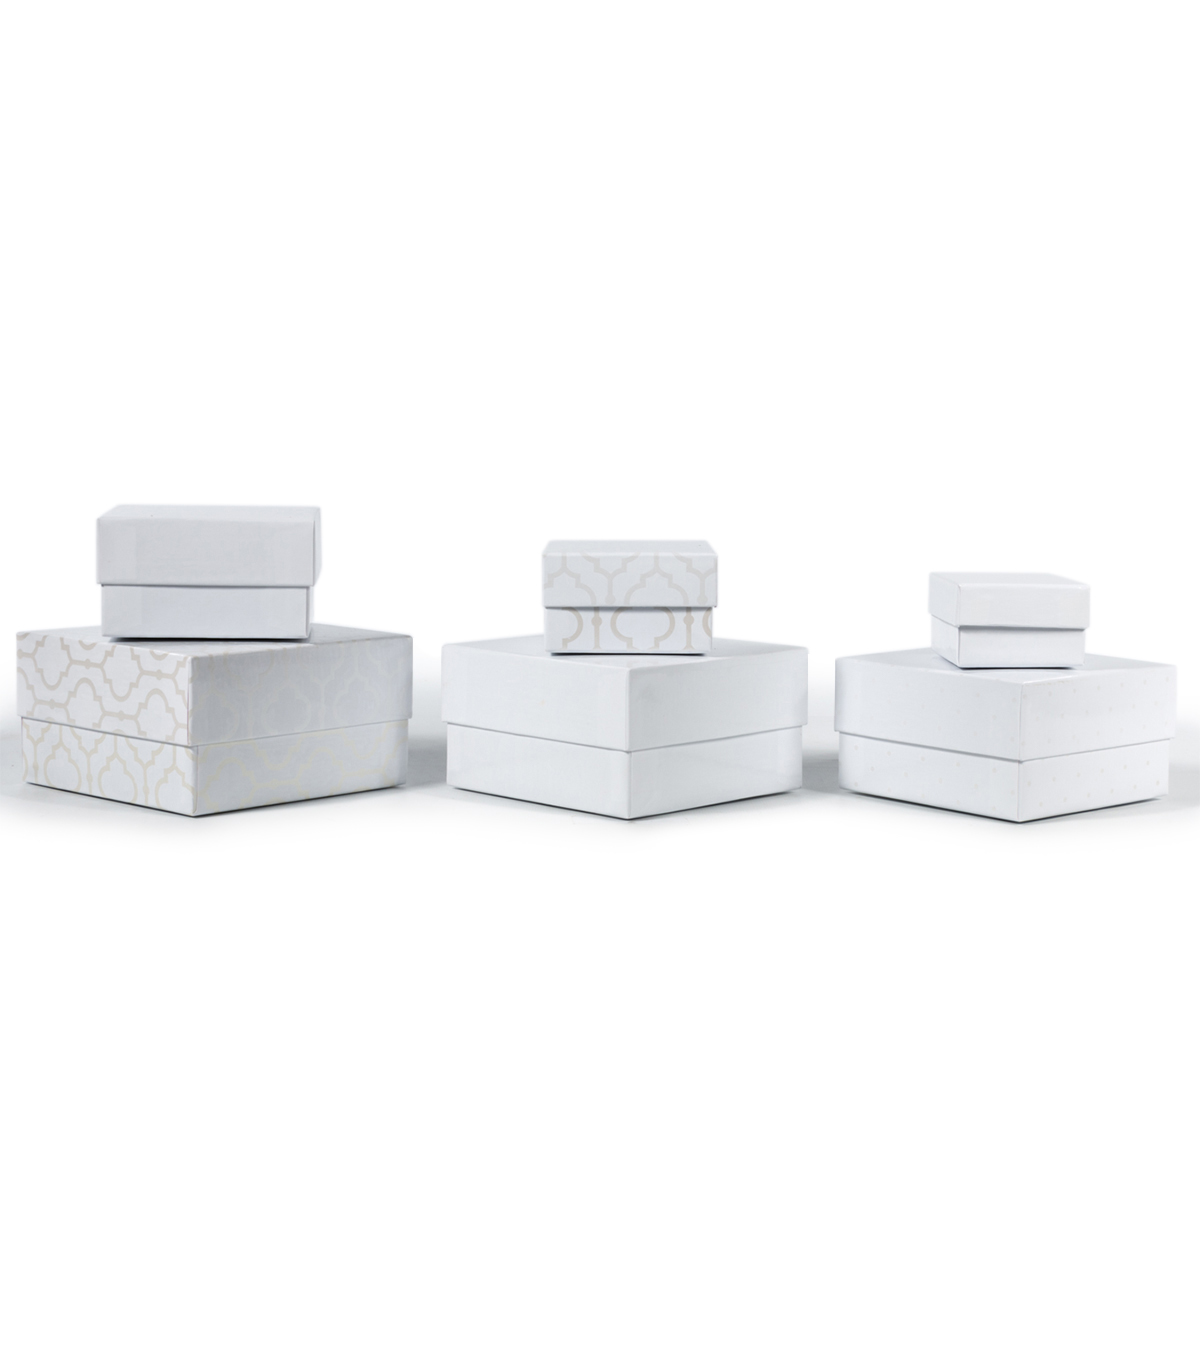 DCWV Designer Set of Nested Boxes White